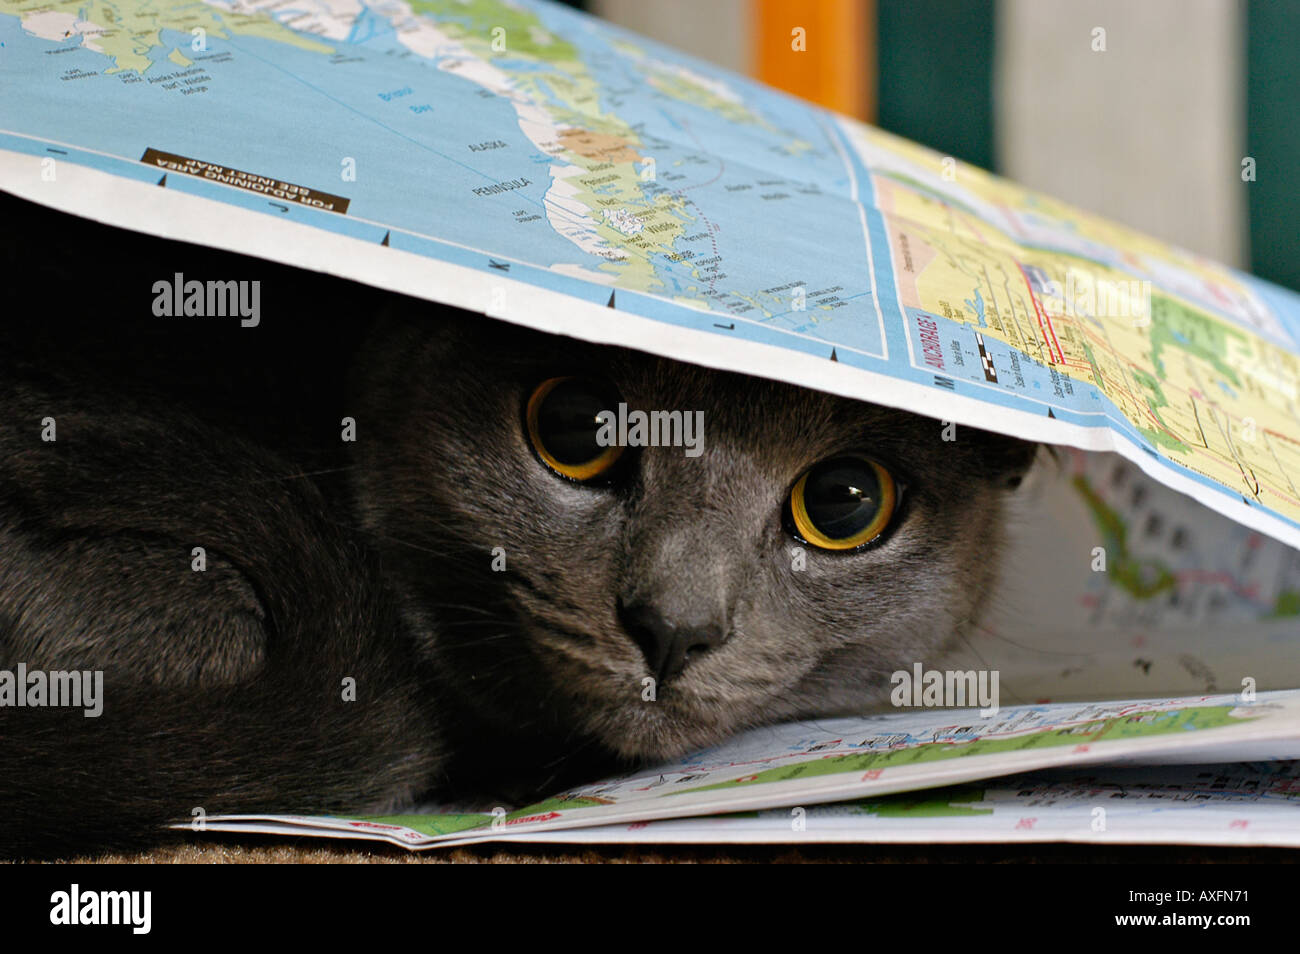 Grey cat hiding under the map - Stock Image